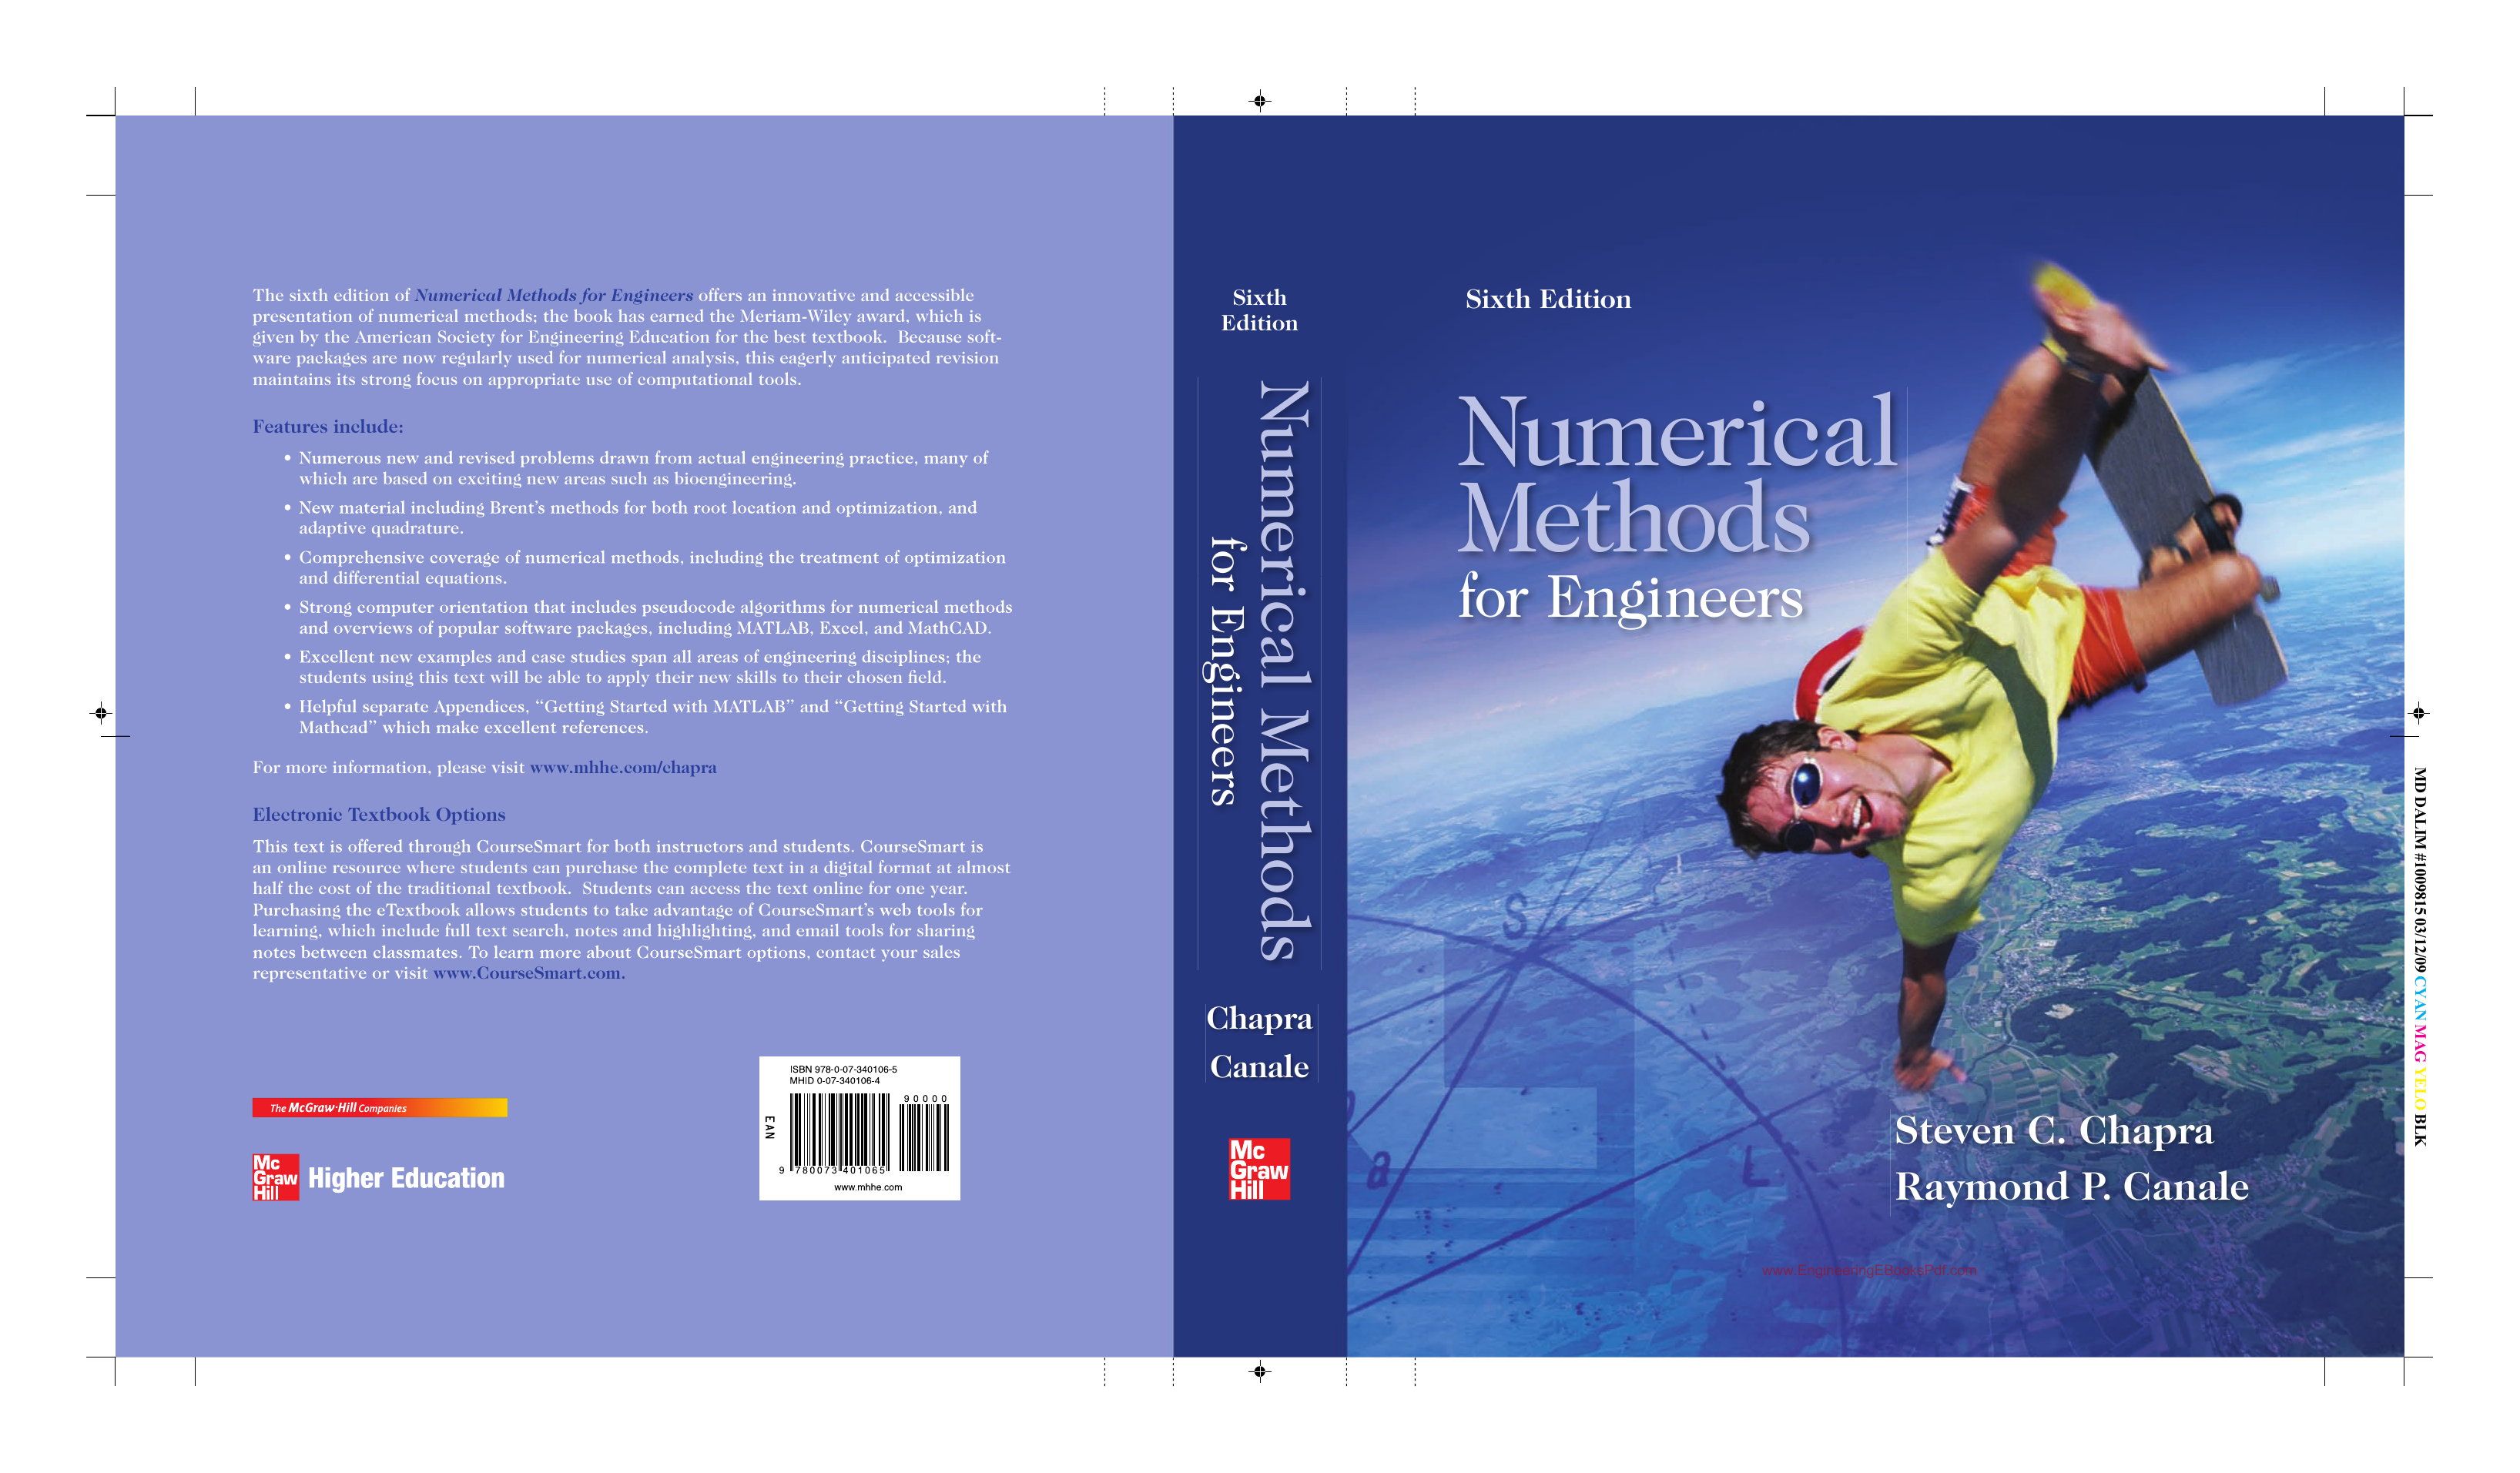 Numerical Methods For Engineers 6th Edition By Steven C Chapra And Raymond P Canale